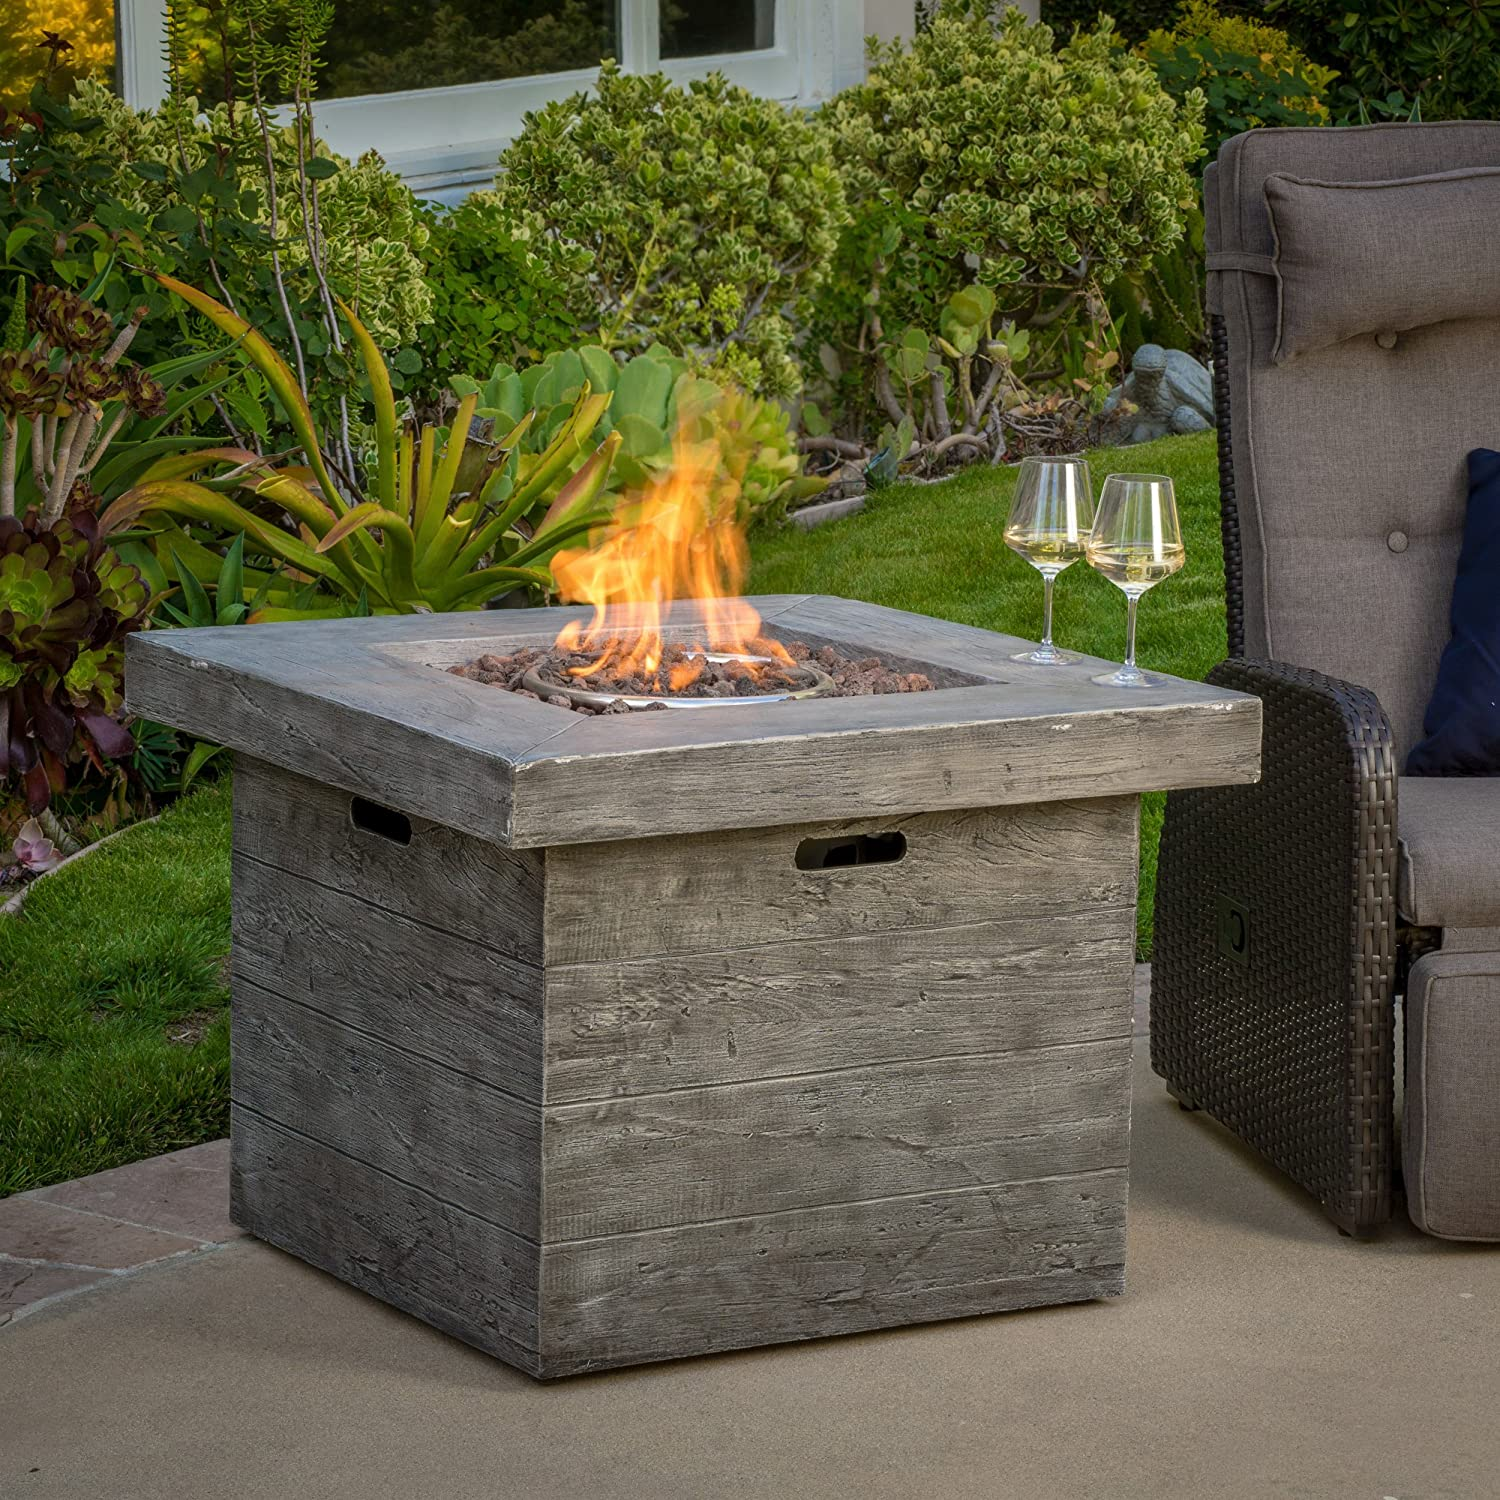 Exceptionnel Amazon.com : Vermont Outdoor 32 Inch Square Liquid Propane Fire Pit With  Lava Rocks : Garden U0026 Outdoor